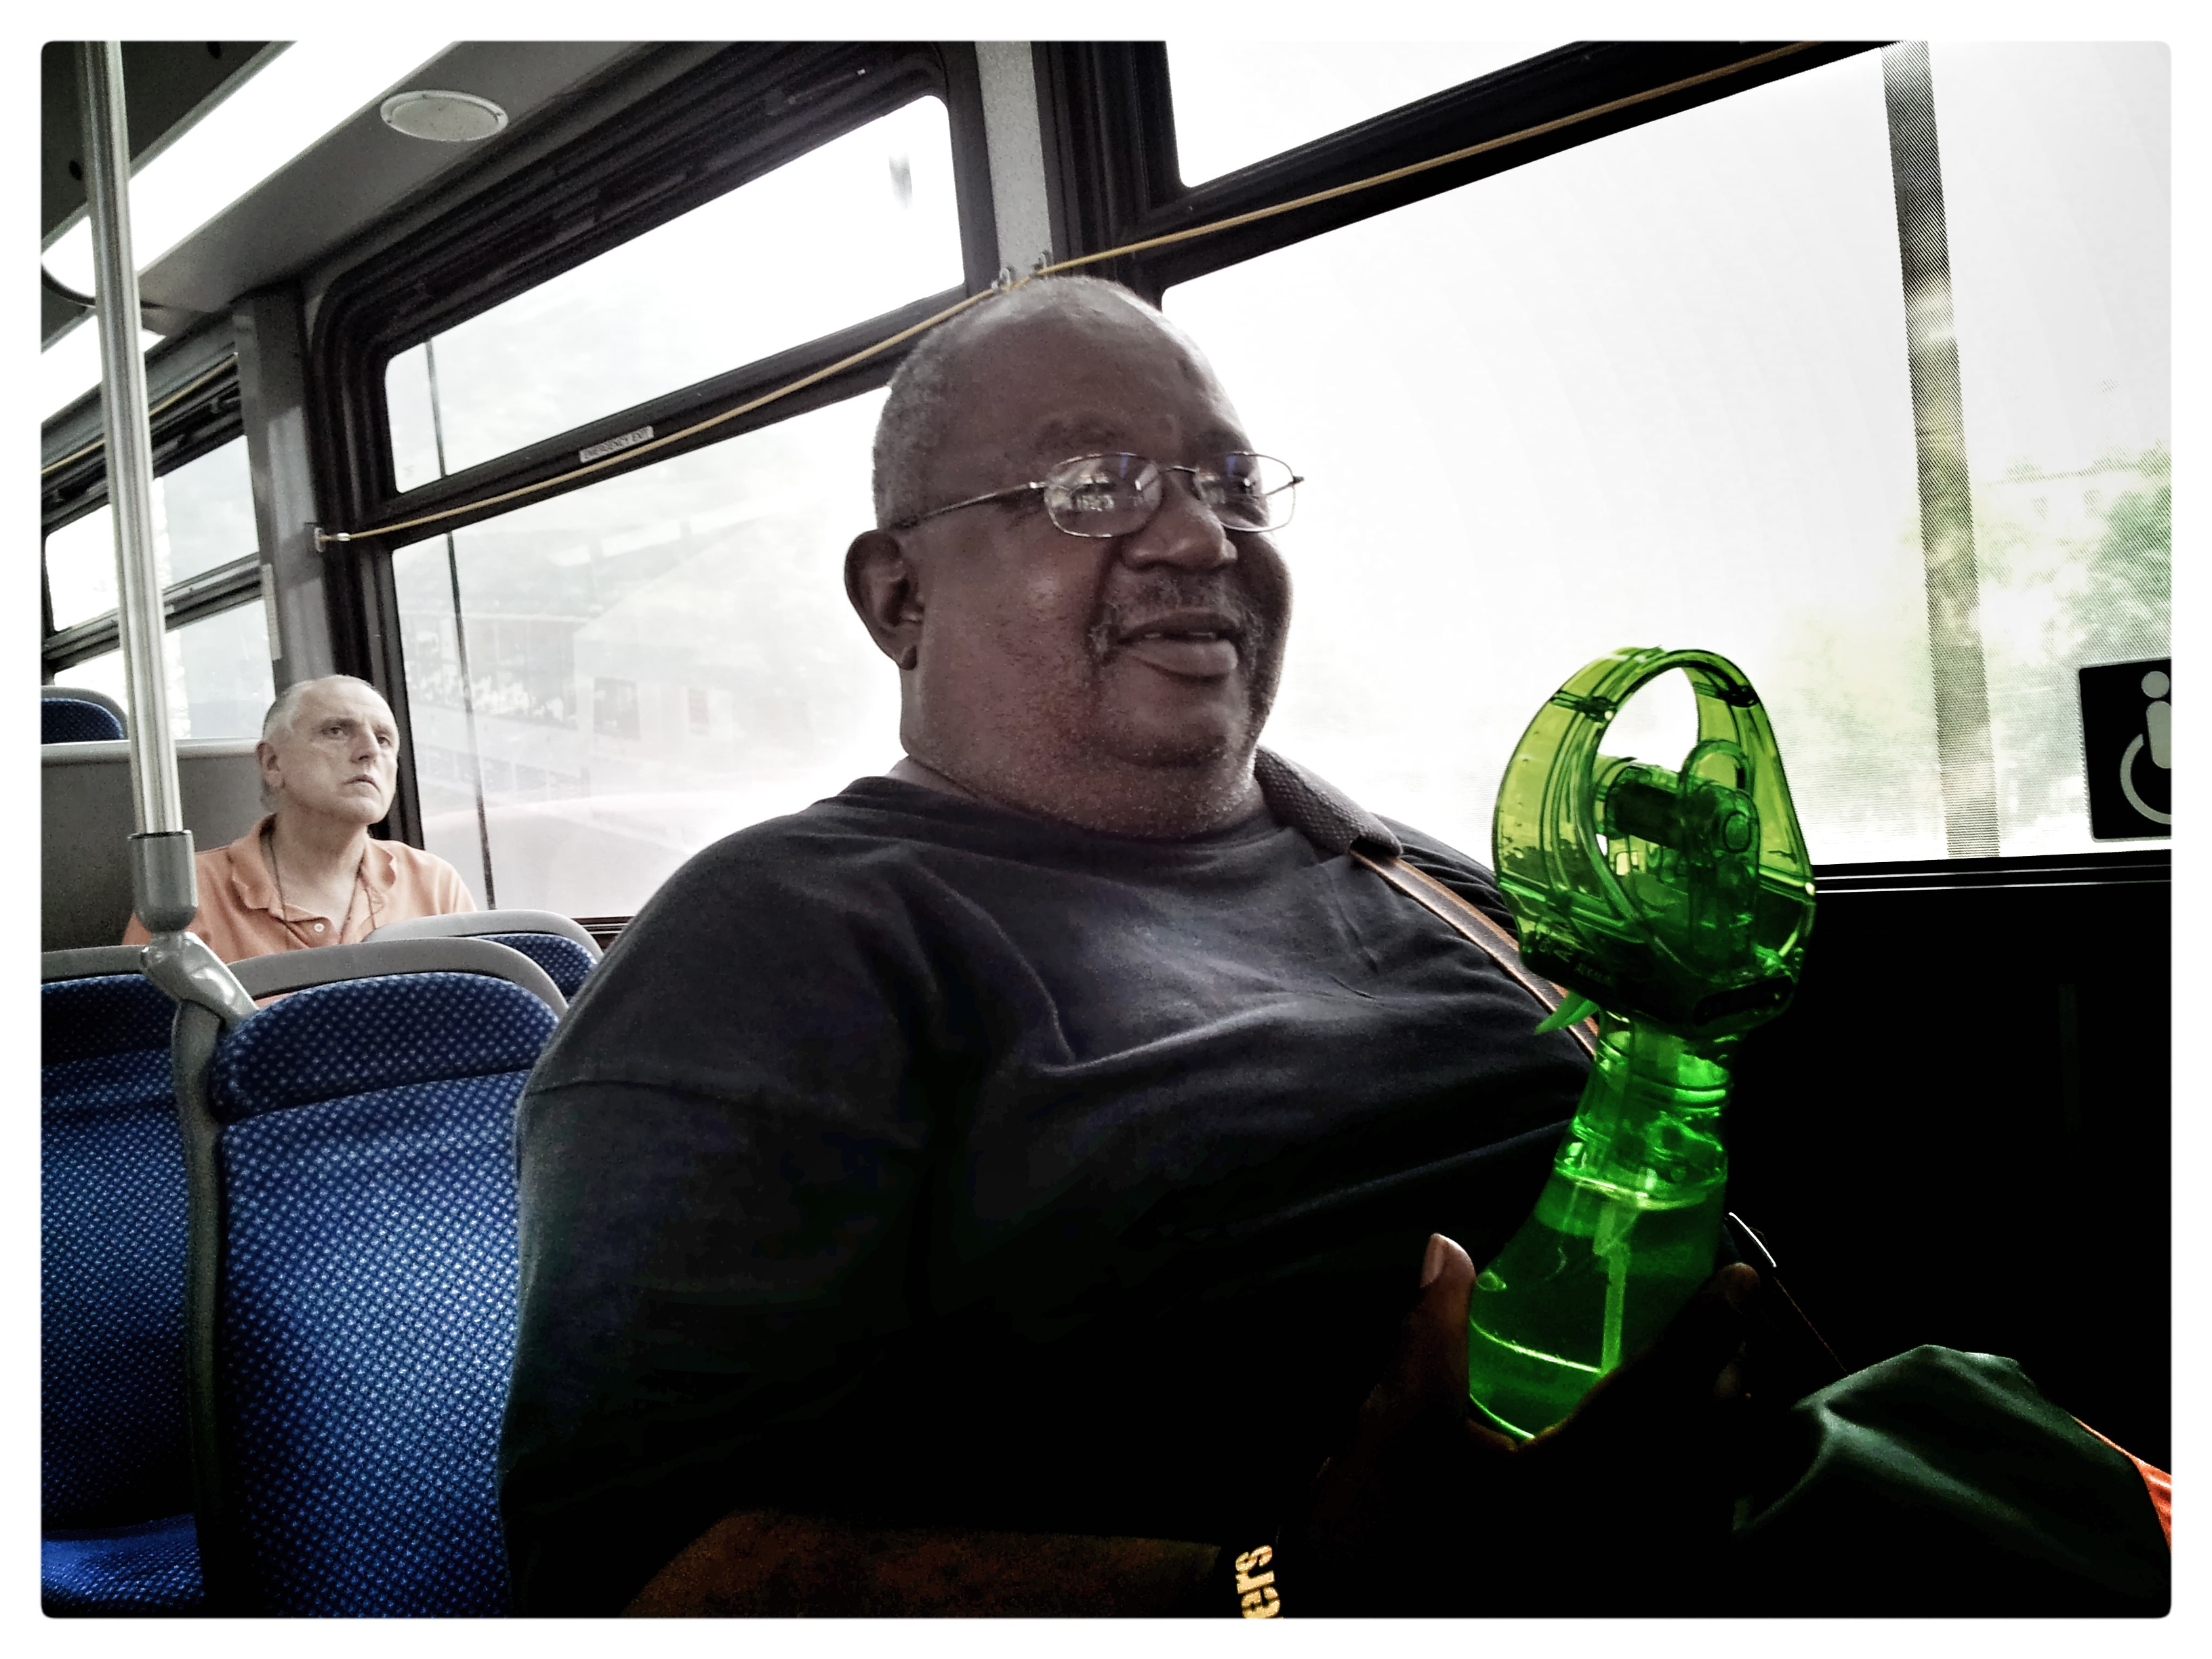 Anthony uses a personal hand-held battery-operated misting fan to stay cool - on his corner and on the 42 bus!